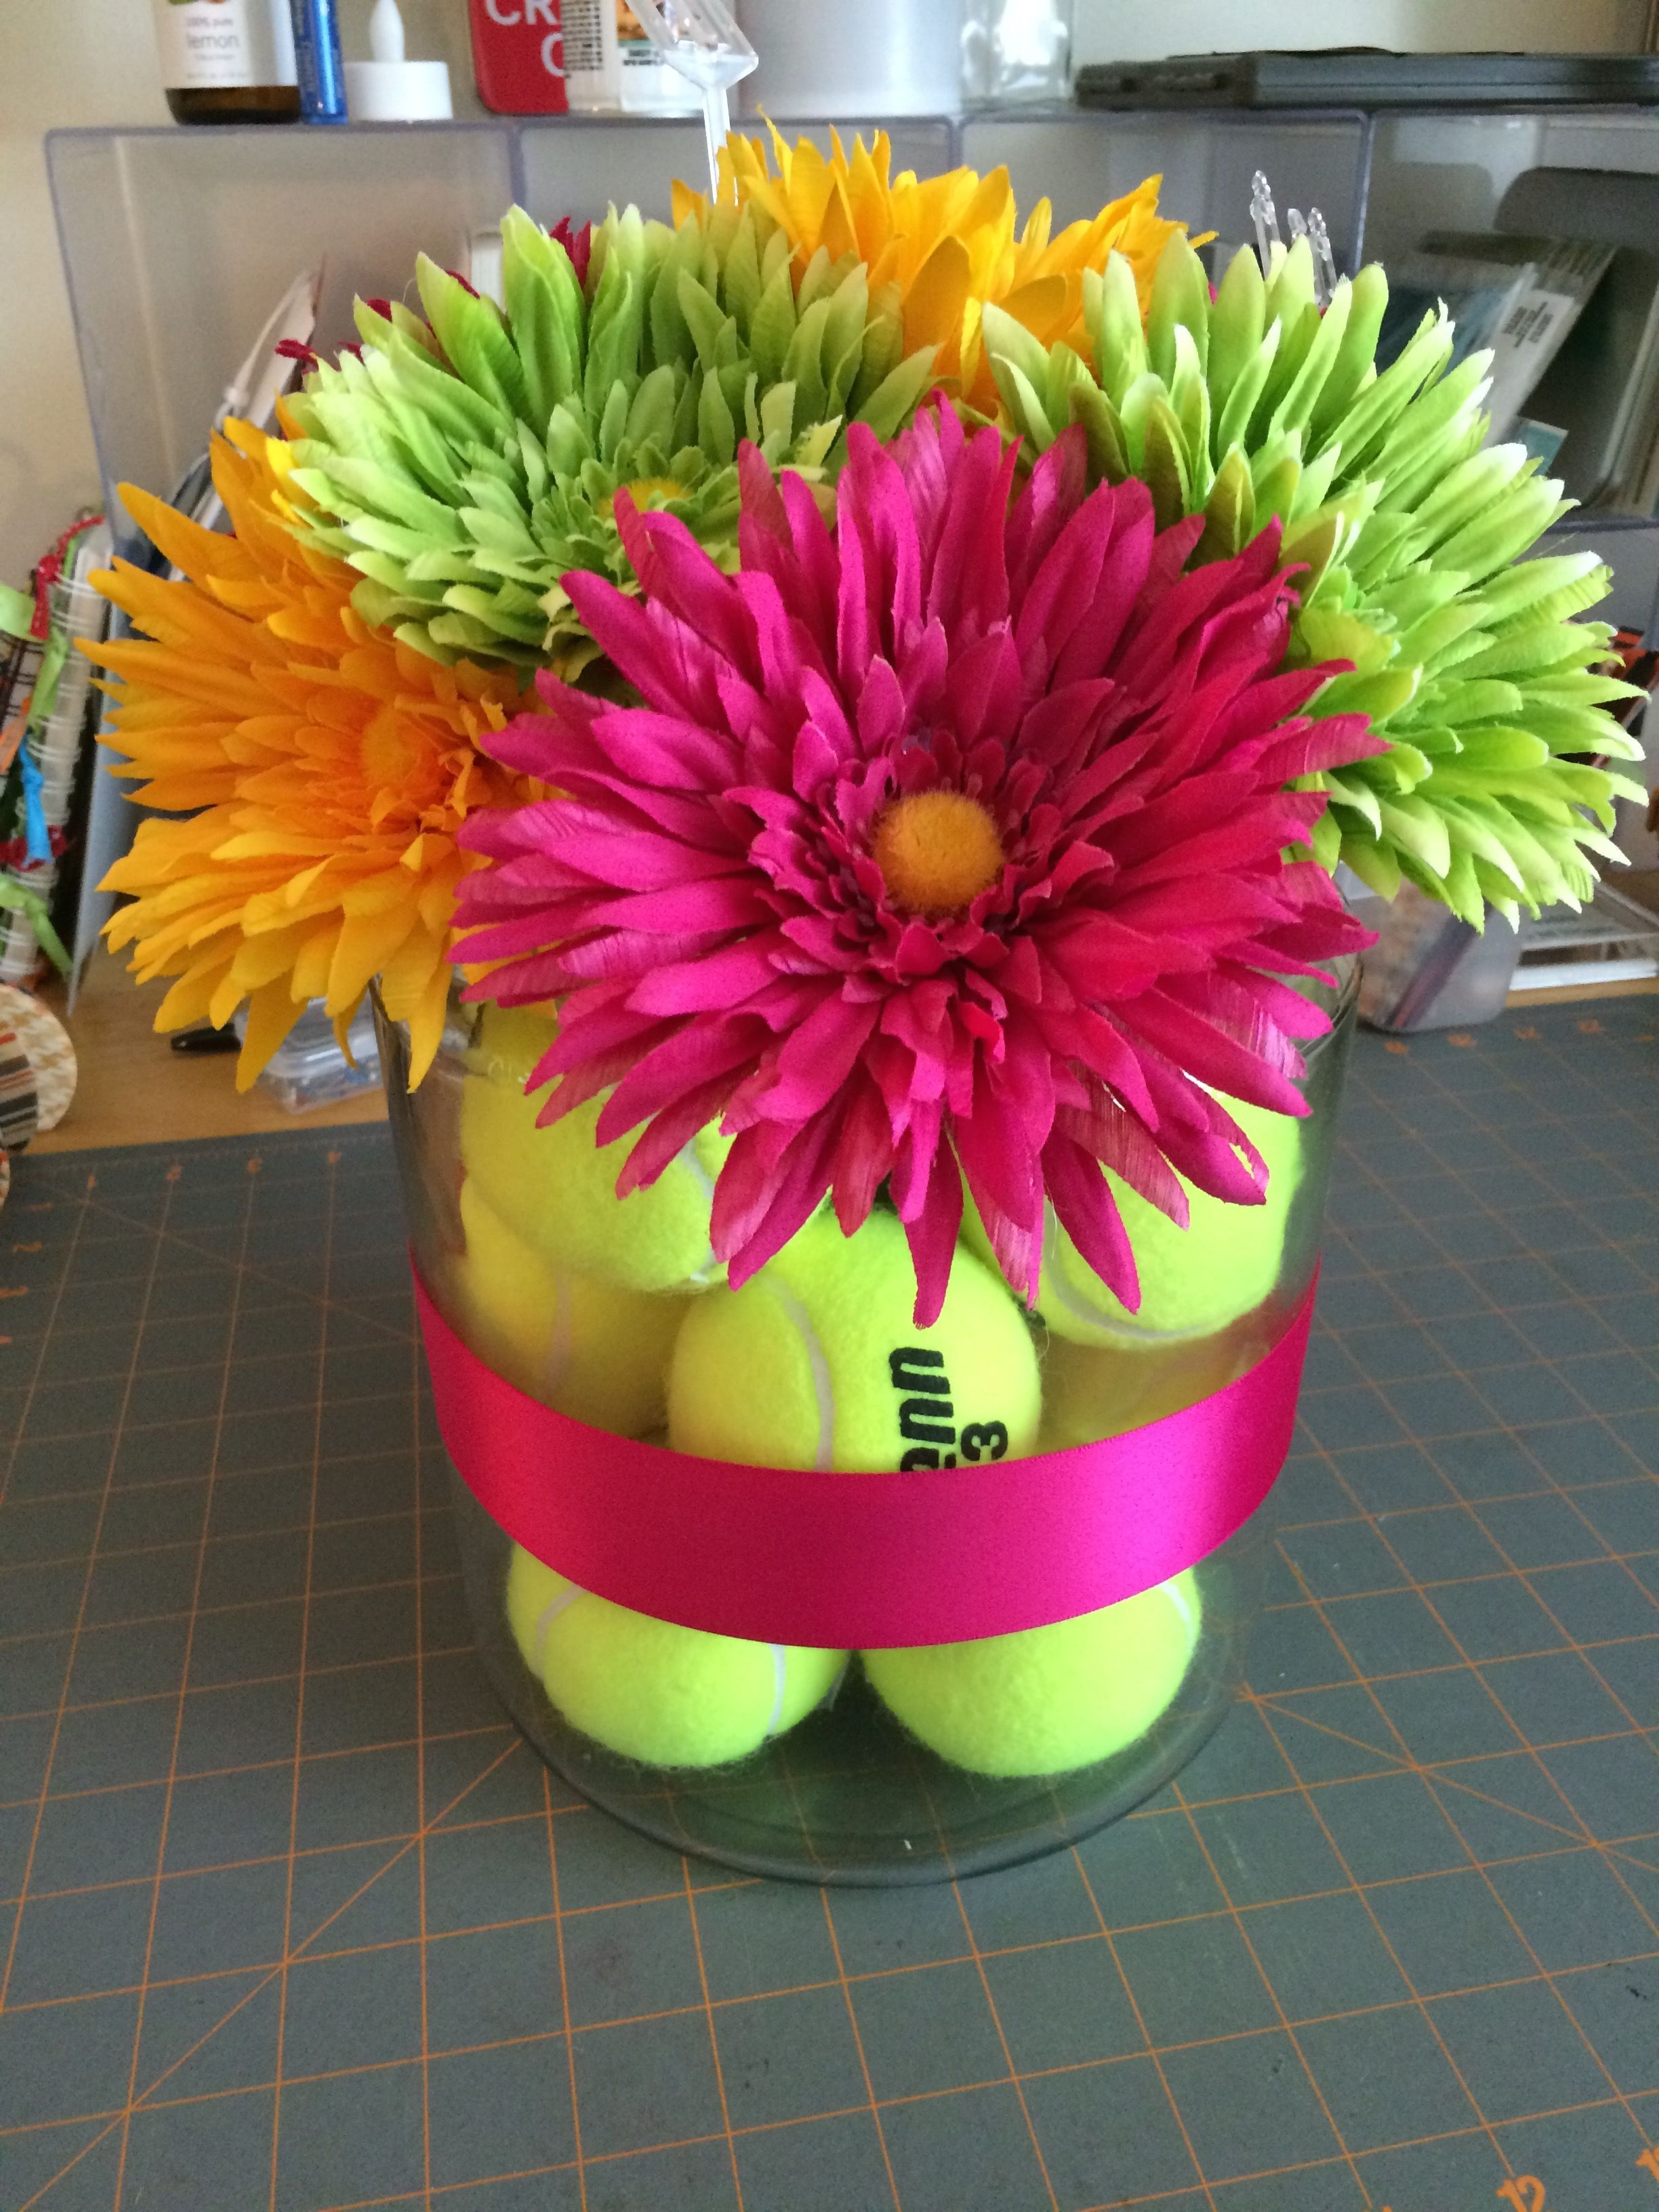 Coach S Gift Tennis Ball Vase With Silk Flowers Clever